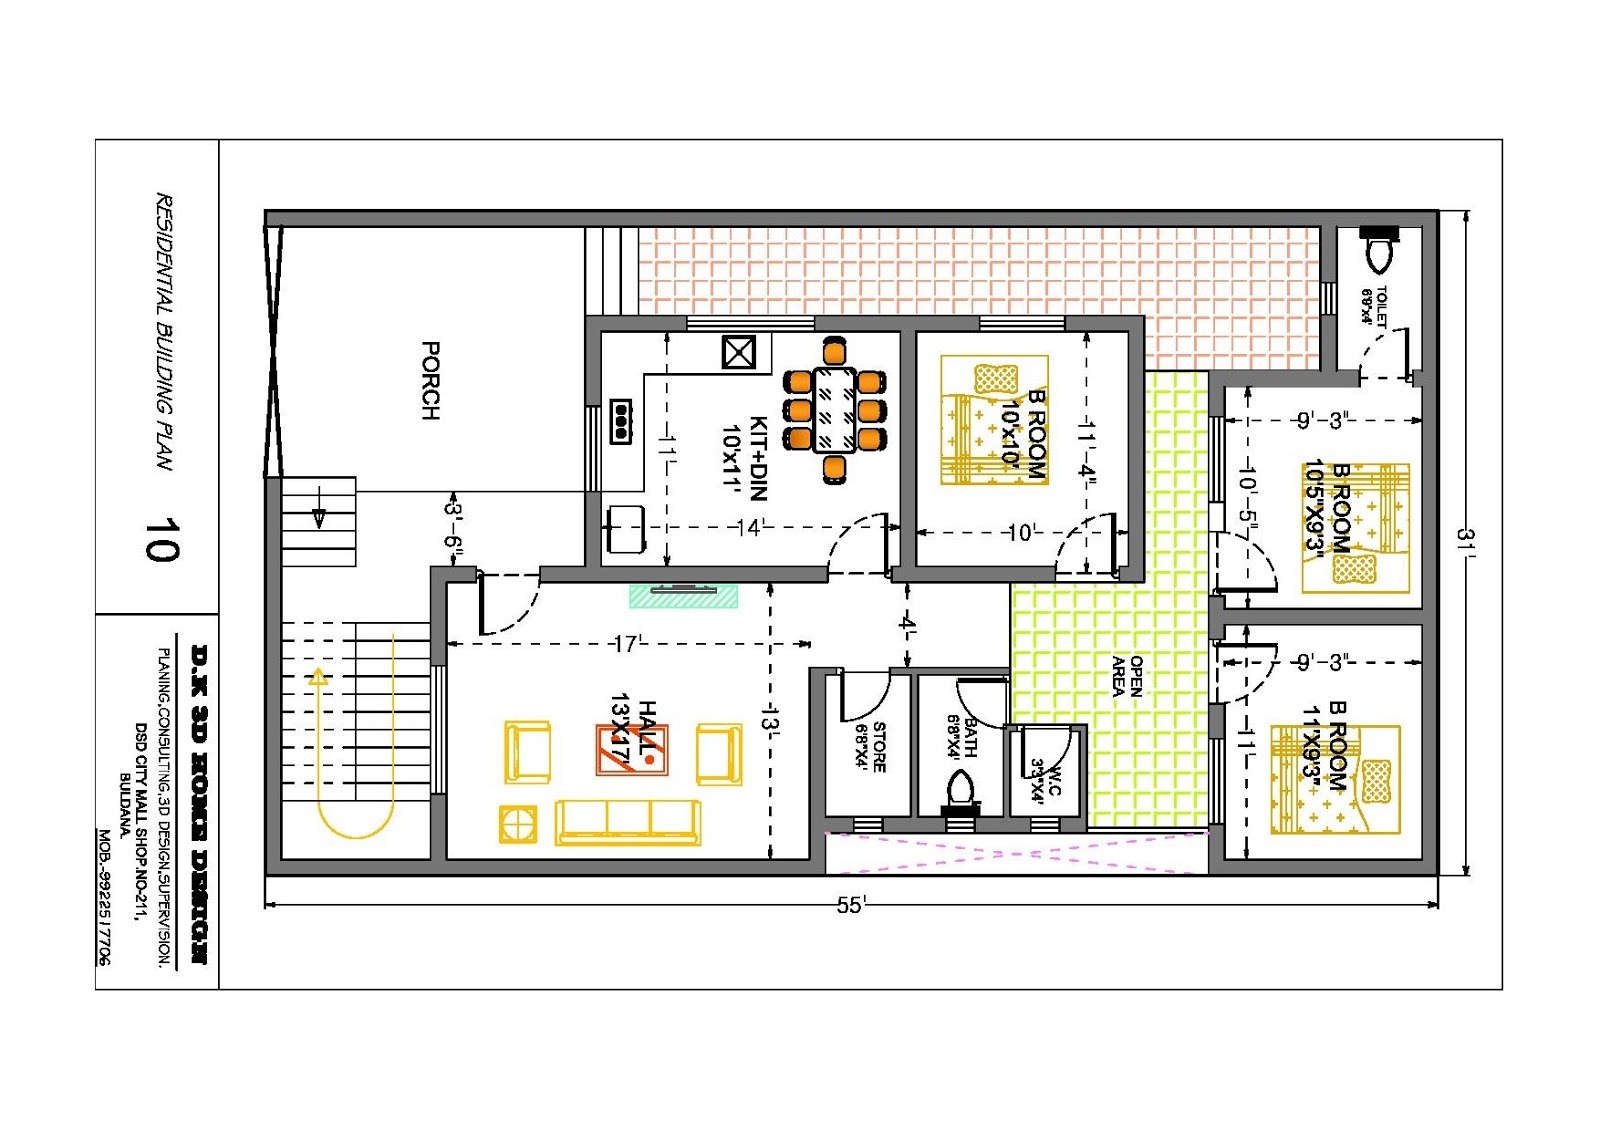 31 x 55 feet home plan - Home Planing